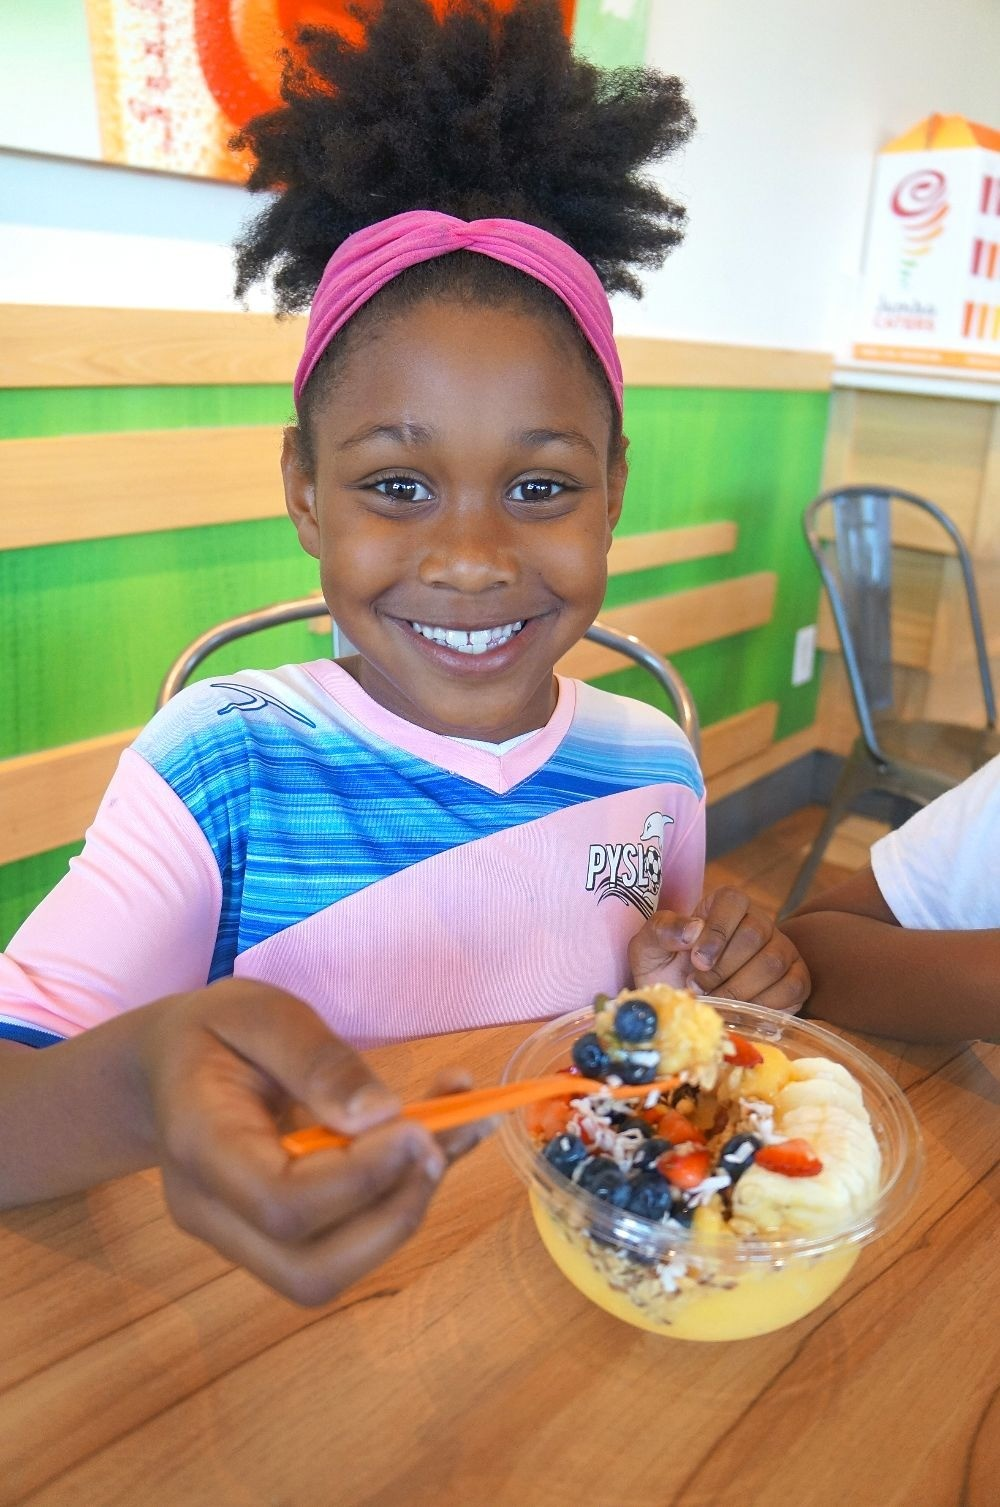 Little girl eats smoothie bowl at Jamba Juice, a nutritious after soccer practice snack!